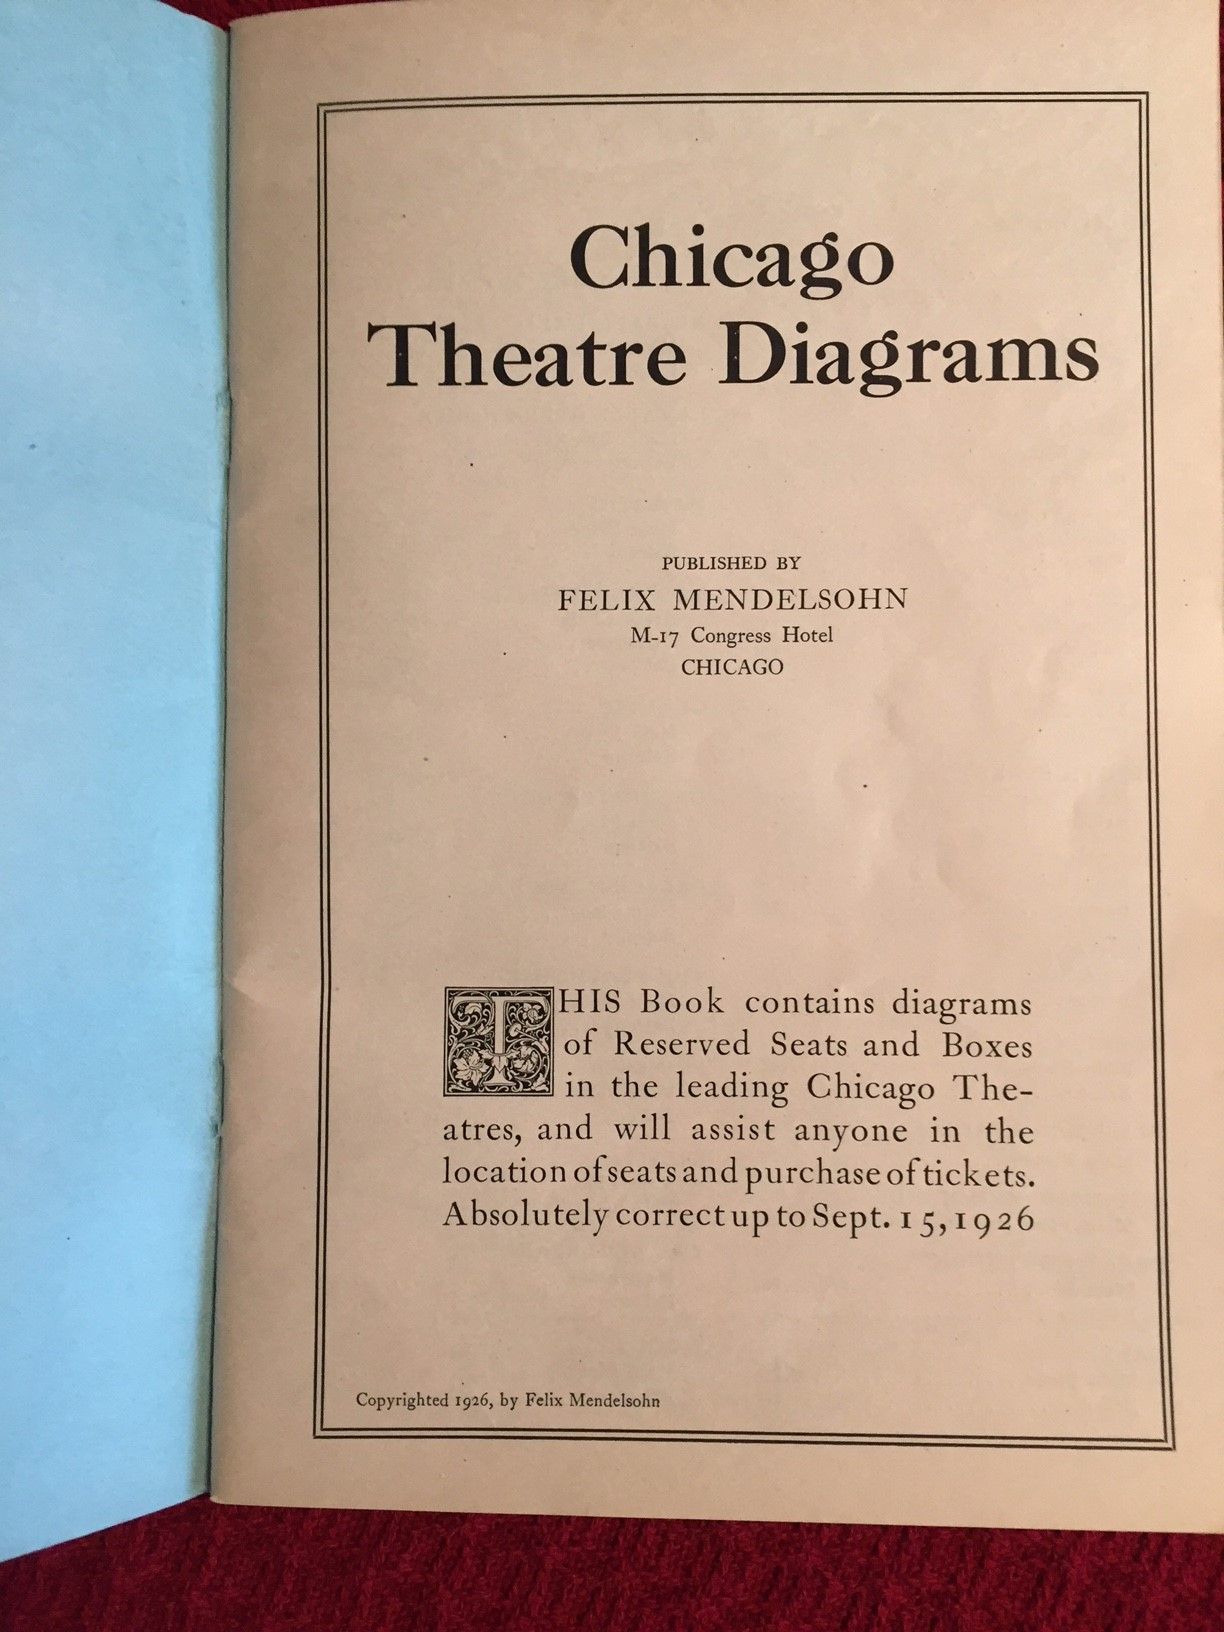 1926 Schematic of Theatres in Chicago